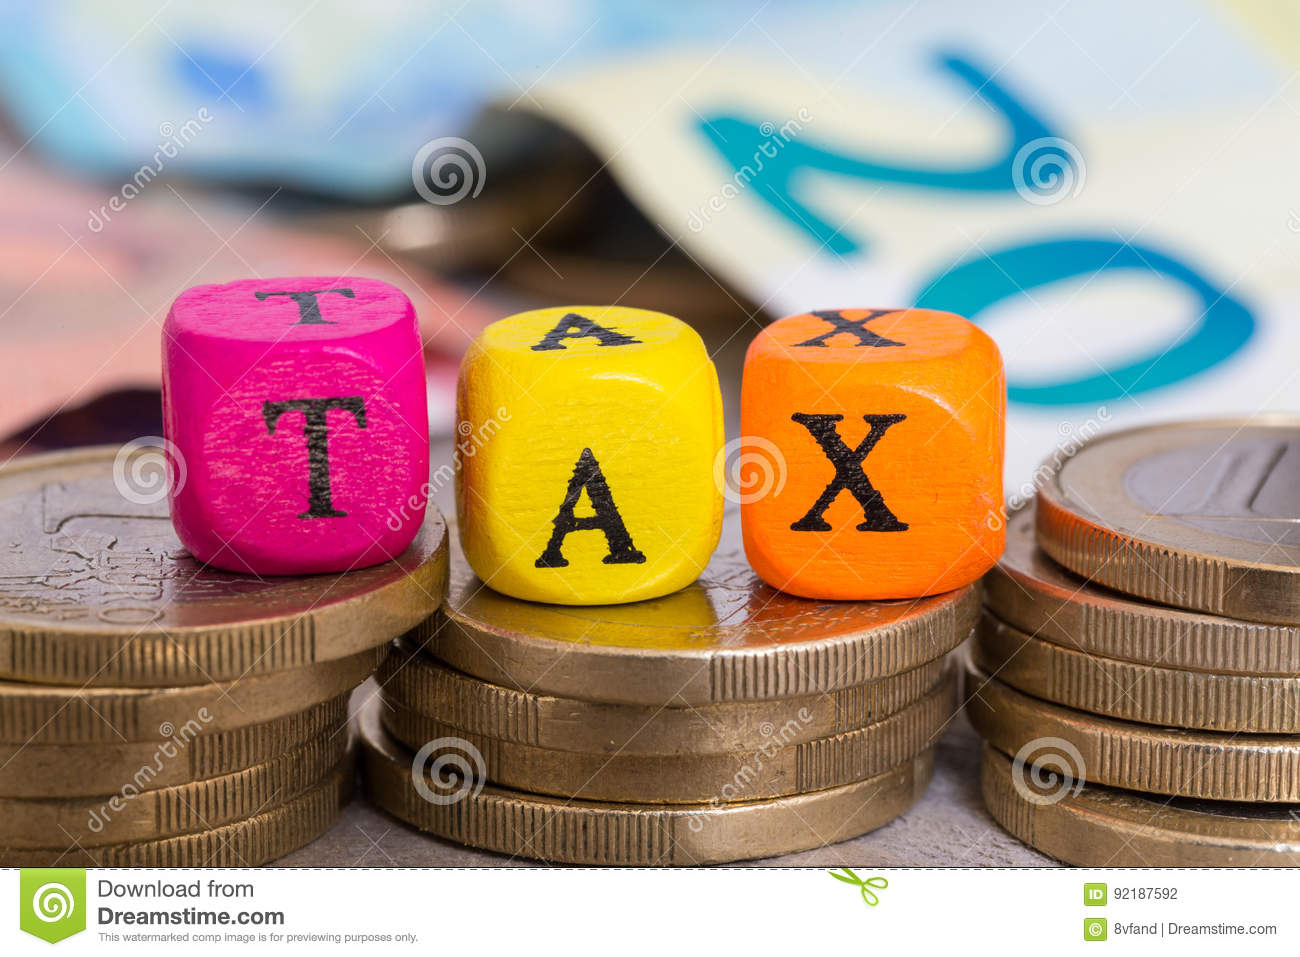 TAX letter cubes on coins concept